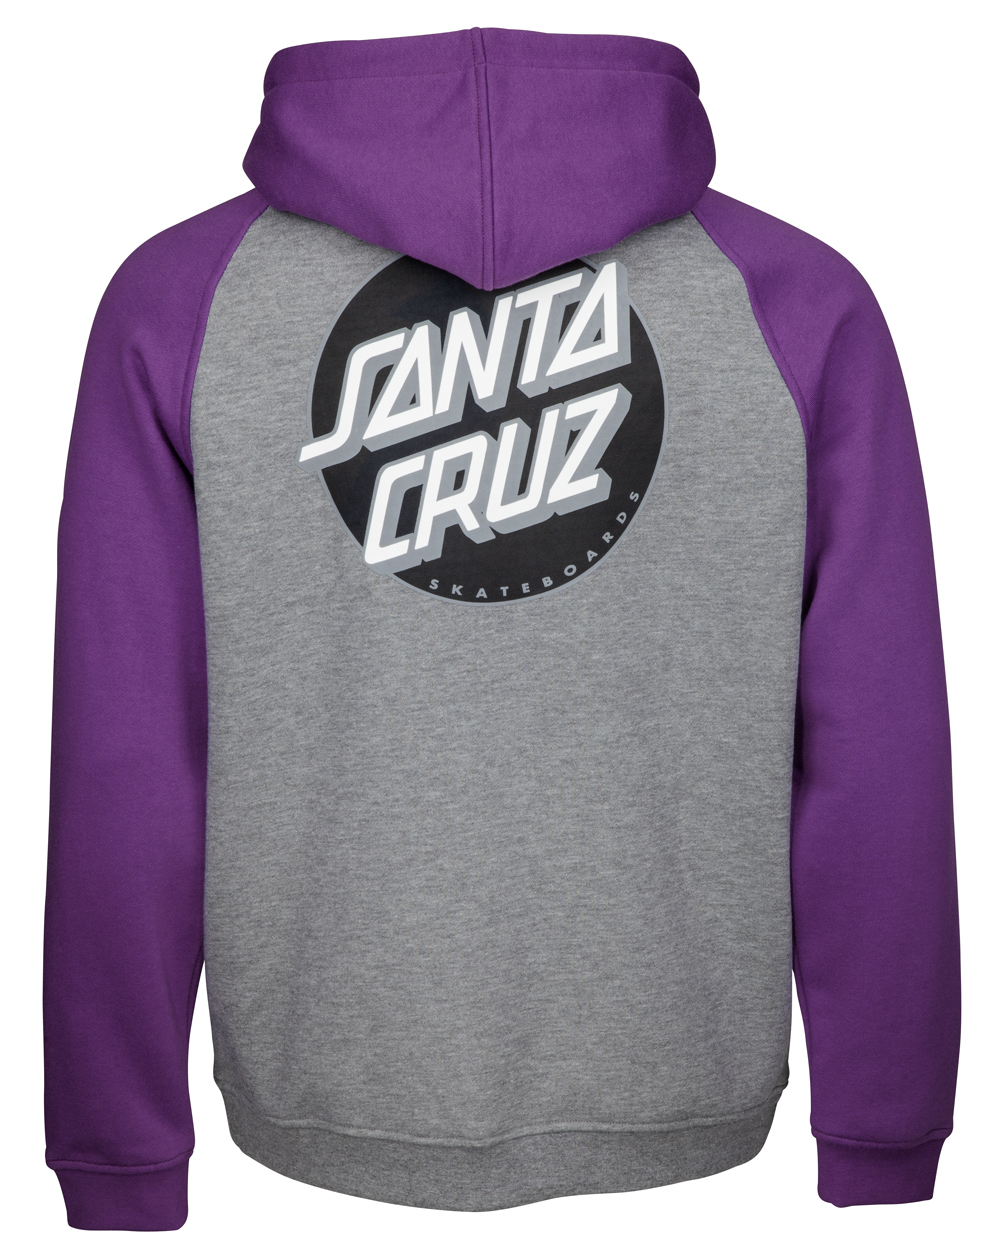 Santa Cruz Men's Full Zip Hoodie Other Dot Purple/Dark Heather